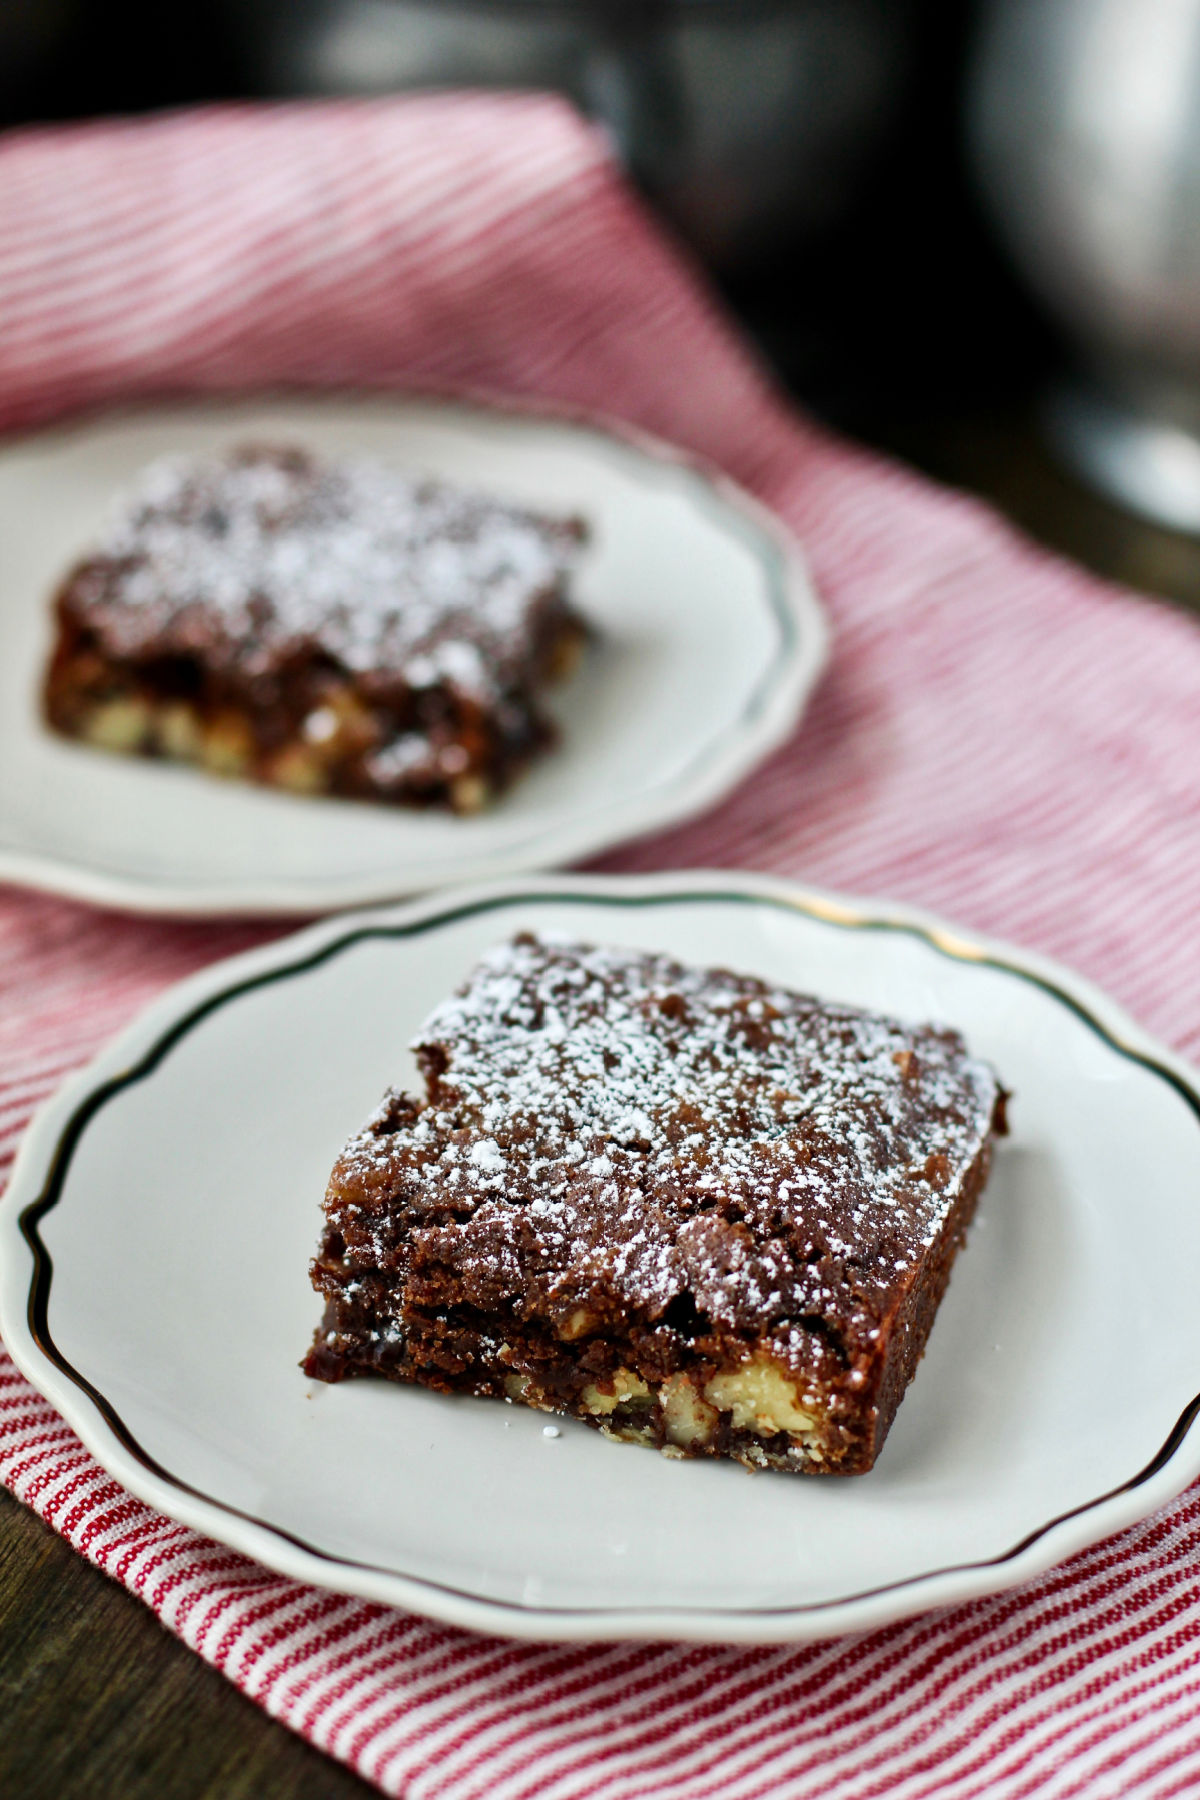 Fudge Cake with Cherries and Pecans slices on plates